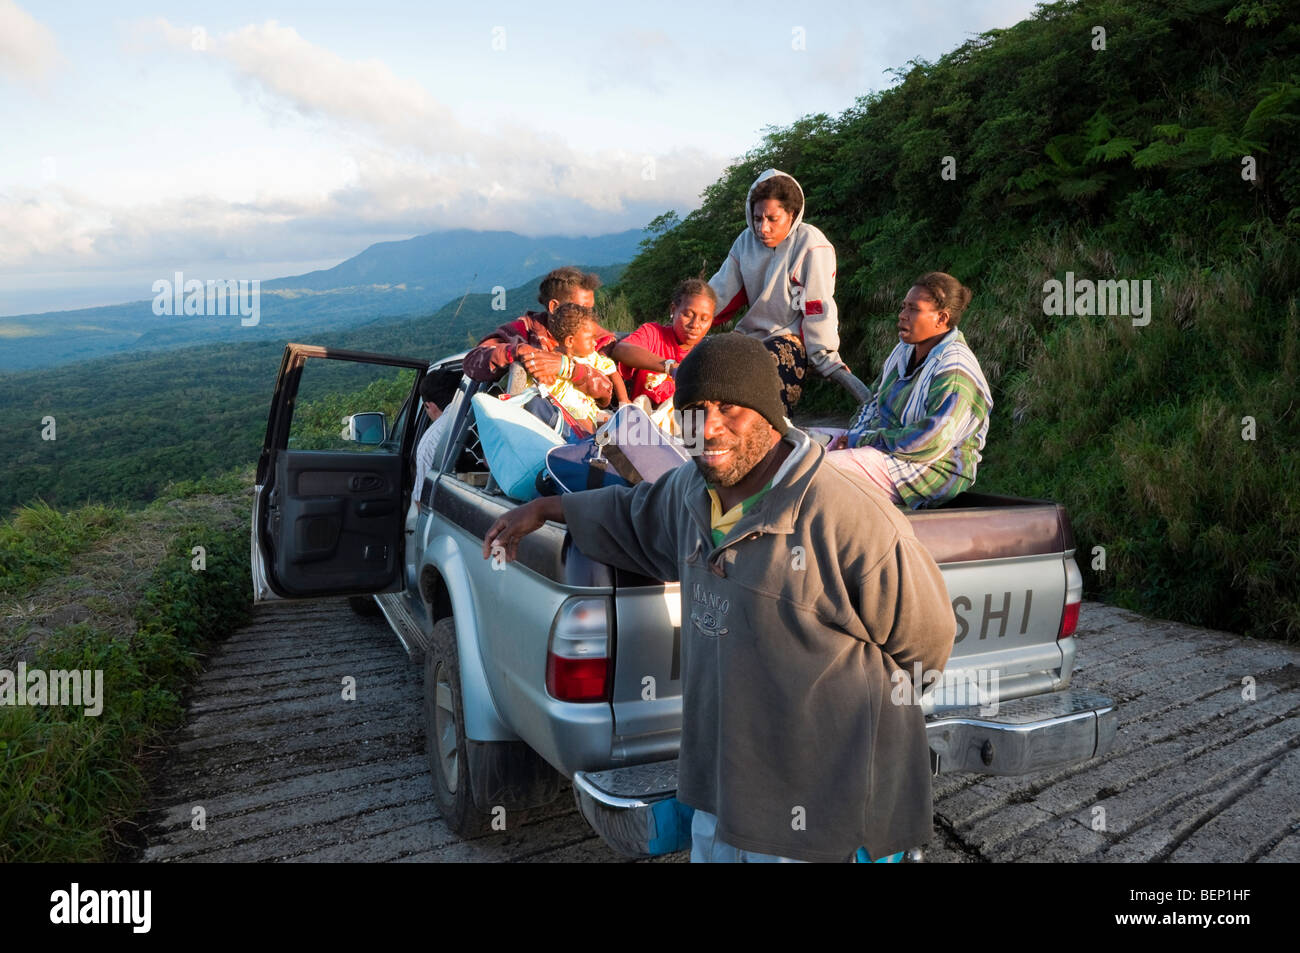 Developing country transport: a family and other villagers in the back of a pickup truck - Stock Image